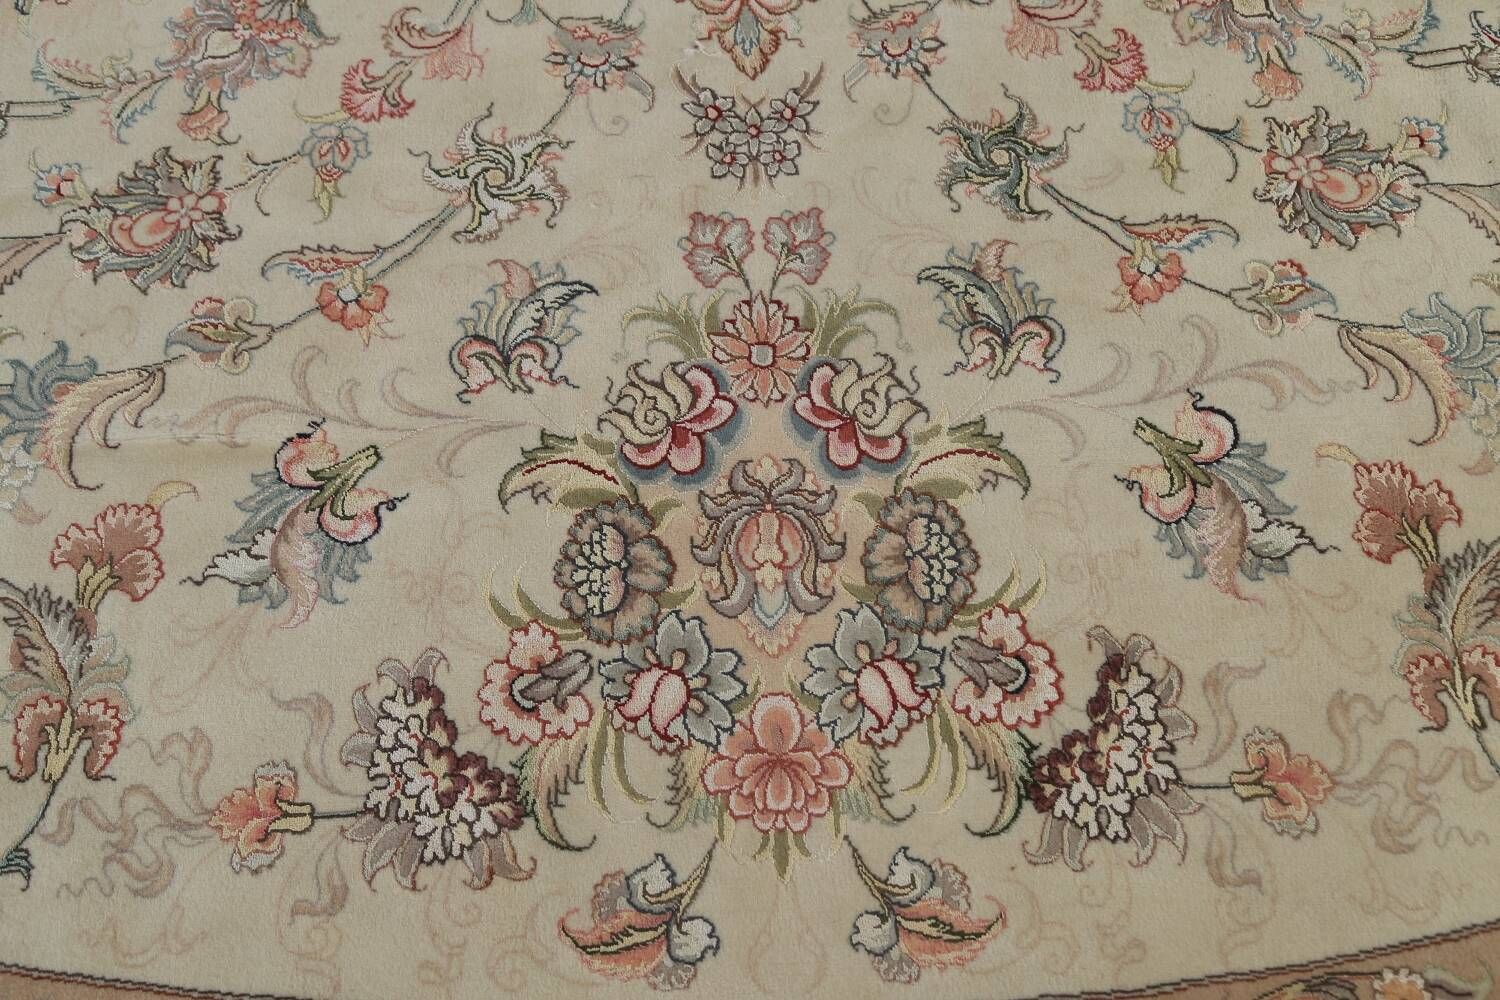 100% Vegetable Dye Floral Tabriz Persian Area Rug 22x23 Round image 13